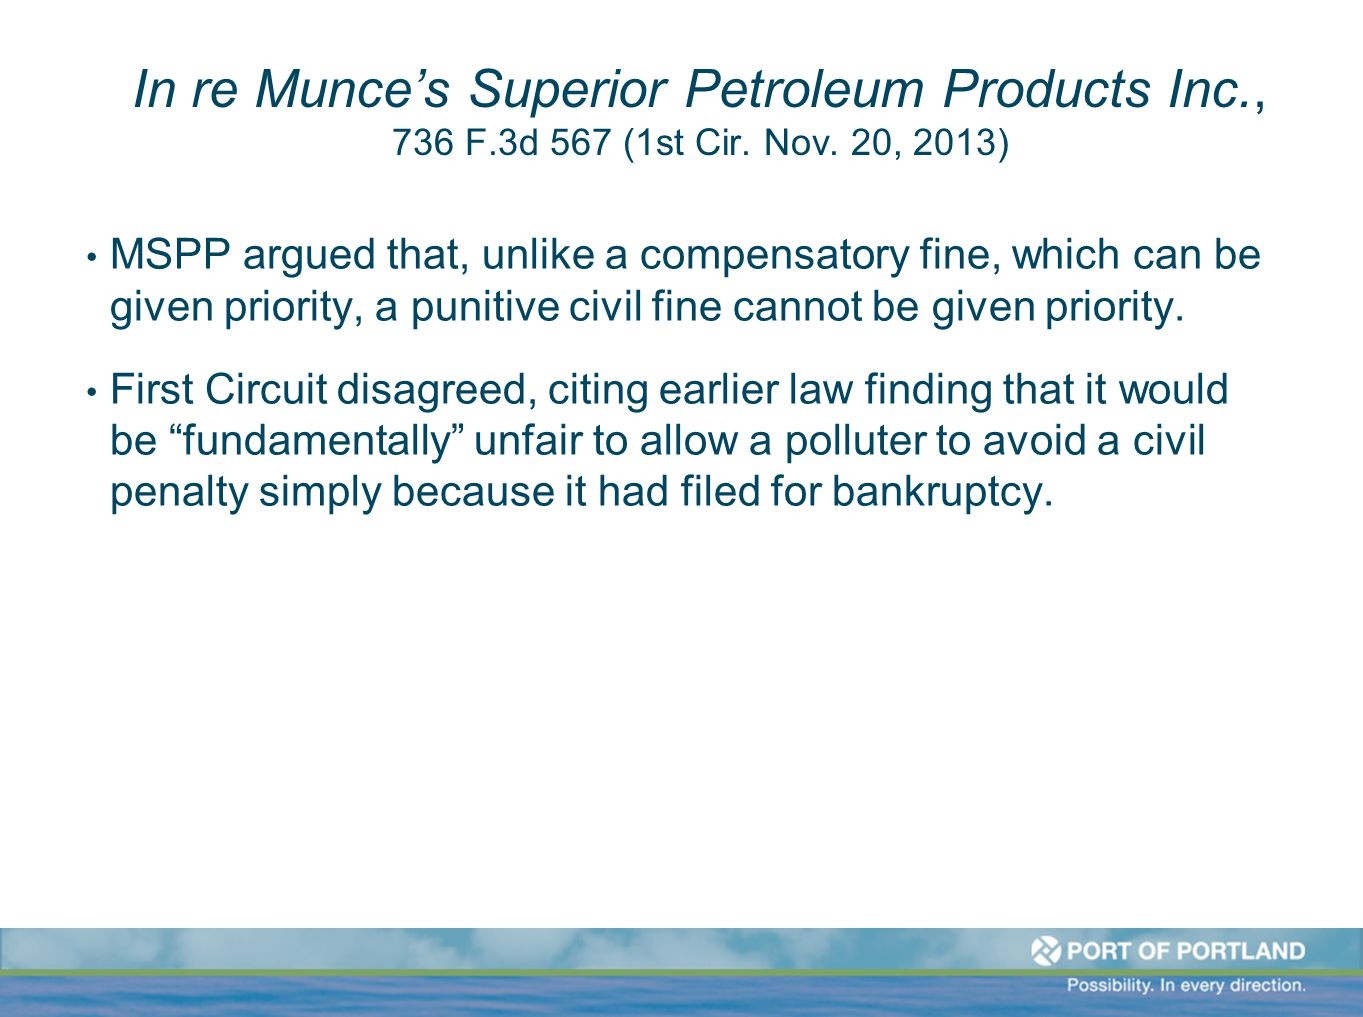 In re Munce's Superior Petroleum Products Inc., 736 F.3d 567 (1st Cir. Nov. 20, 2013) MSPP argued that, unlike a compensatory fine, which can be given